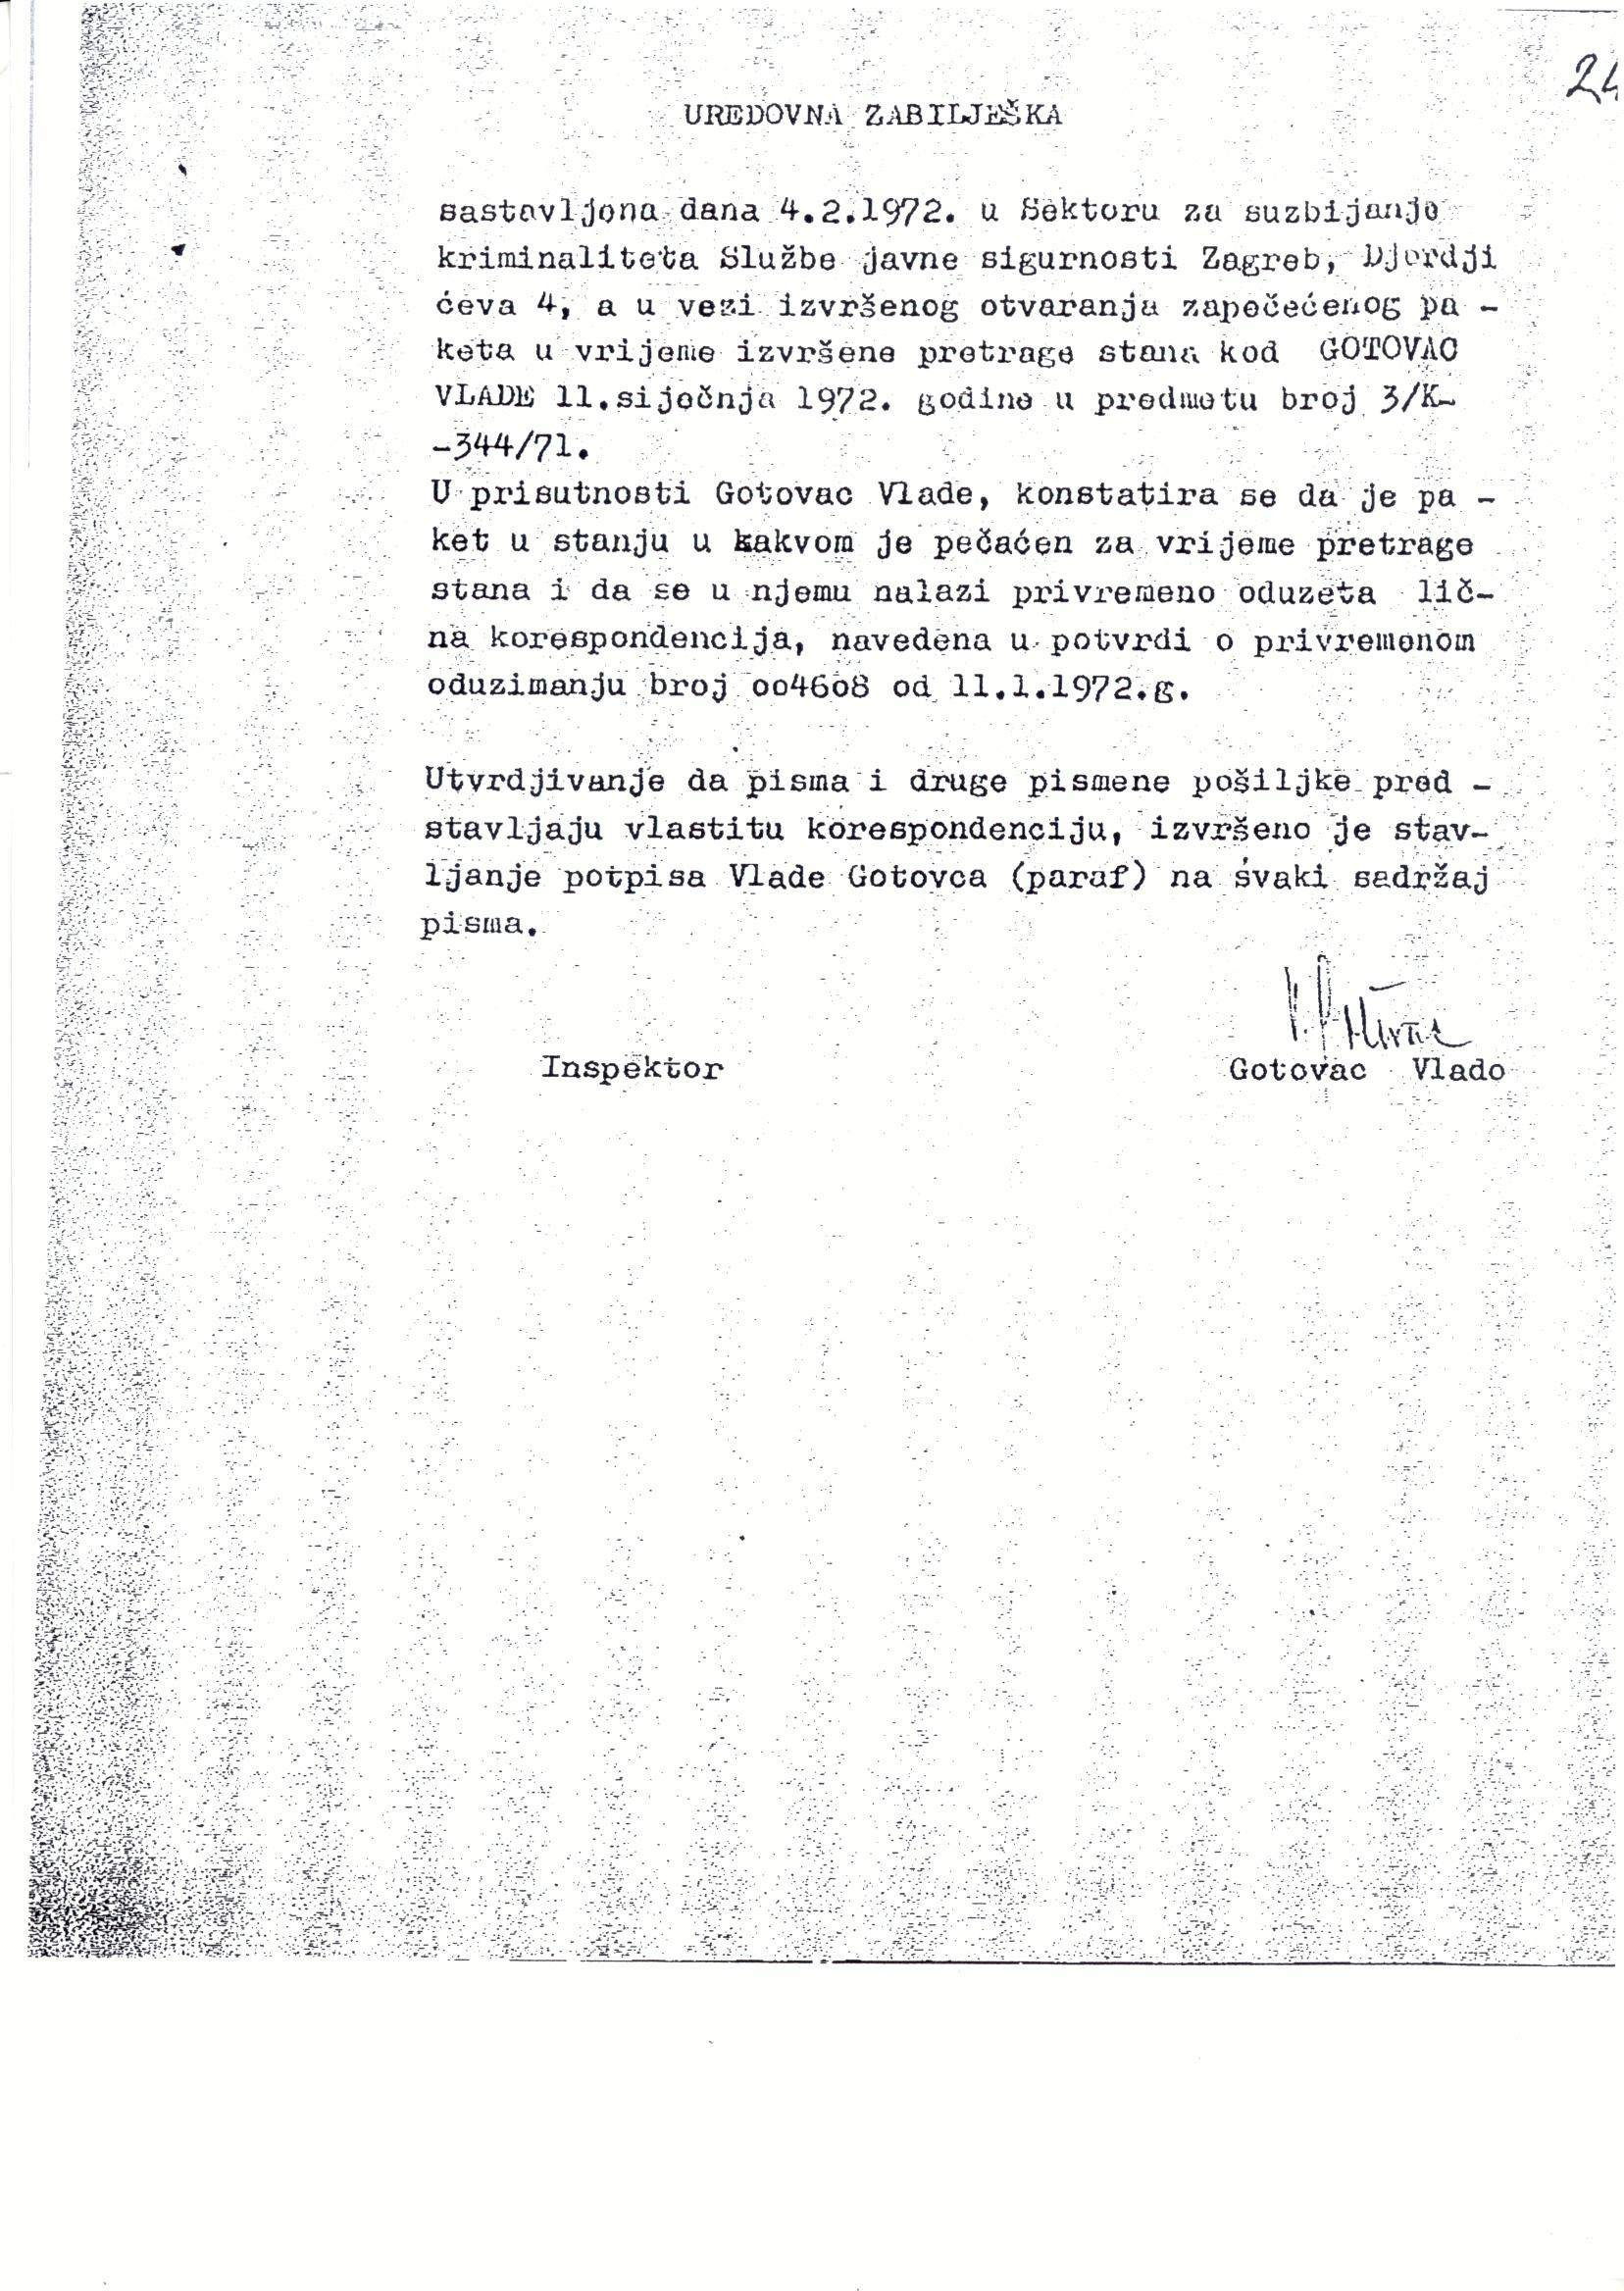 Official memorandum in Vlado Gotovac's personal file on personal correspondence seized during a search of his home. 4 February 1972. Archival document.